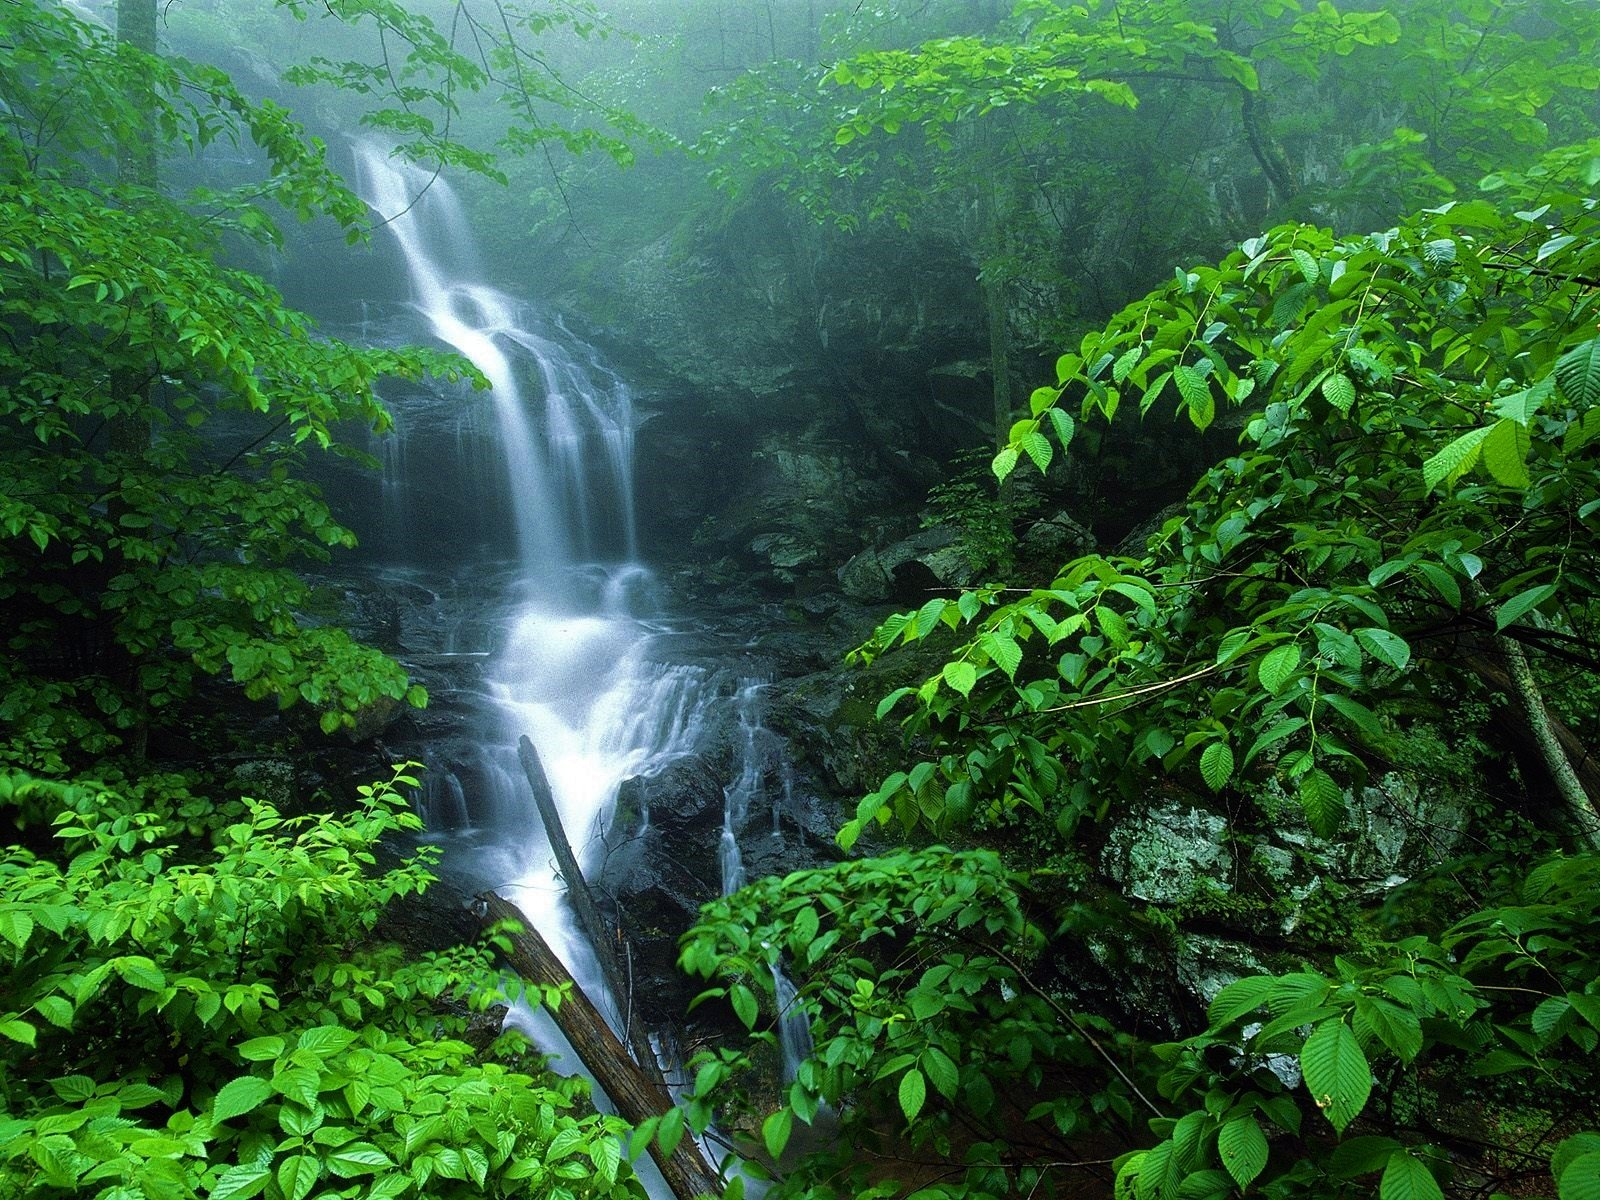 Earth - Waterfall  Greenery Fog Leaf Rock Forest Earth Wallpaper